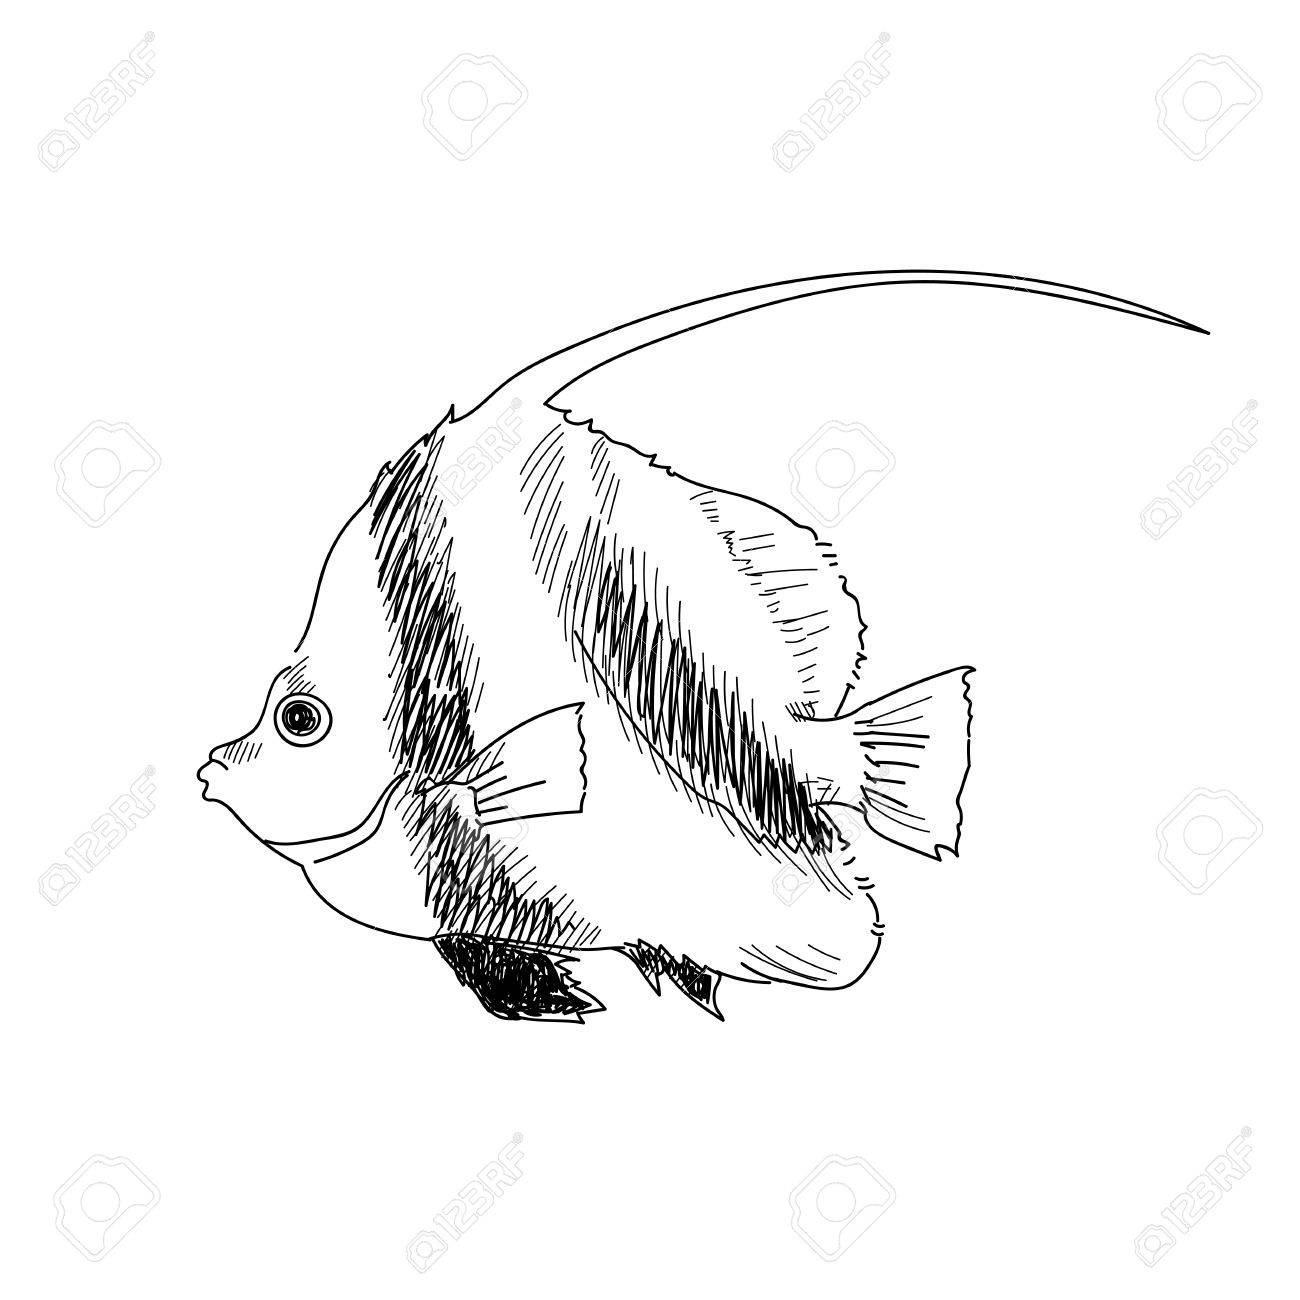 1300x1300 Sea Fish Hand Drawn Sketch Illustrations Of Engraved Line Stock